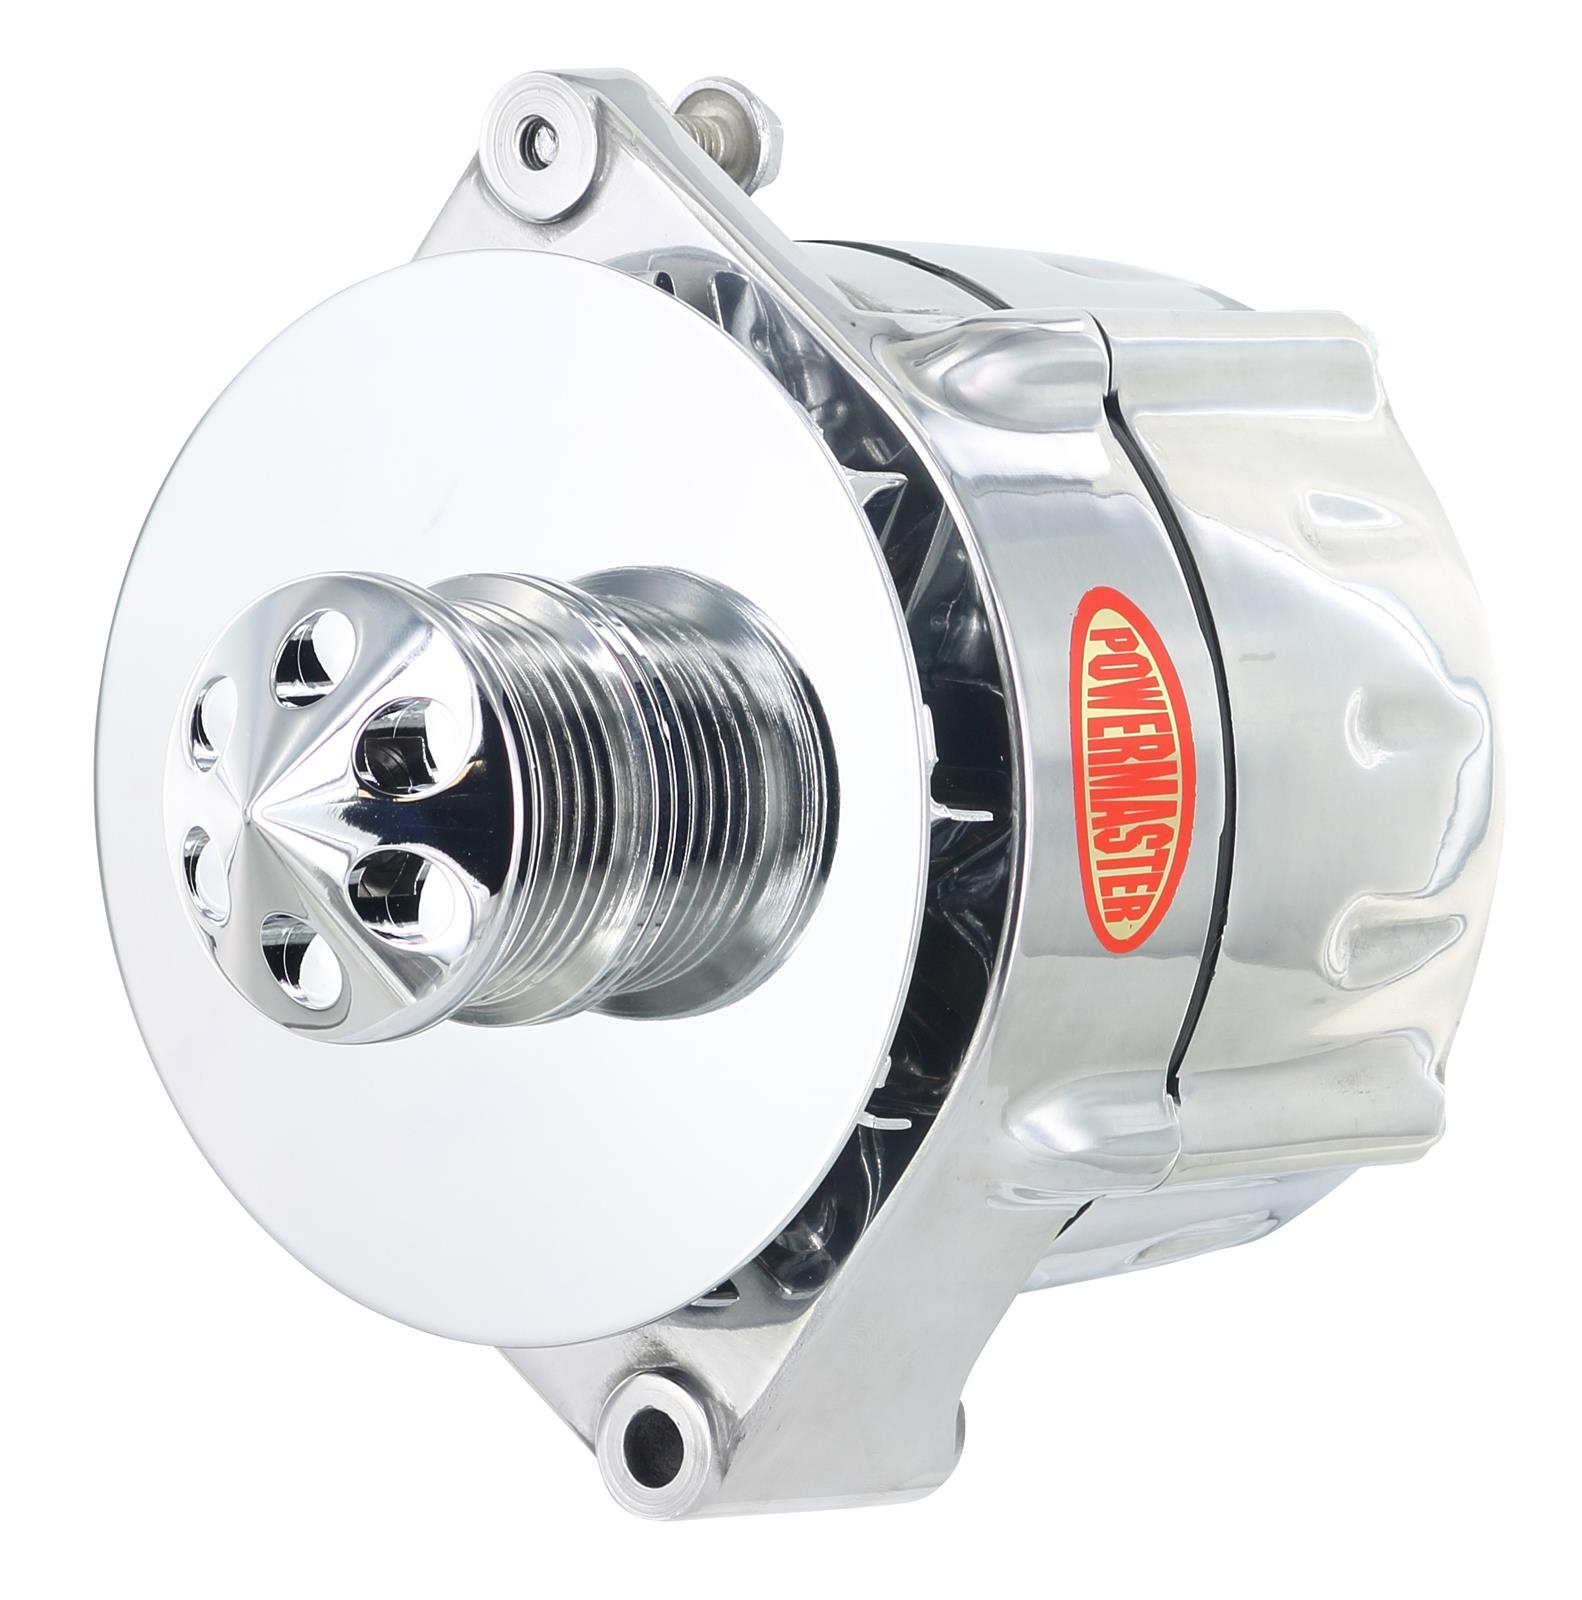 Powermaster Smooth Look Alternators 67296 - Free Shipping on Orders Over  $99 at Summit Racing